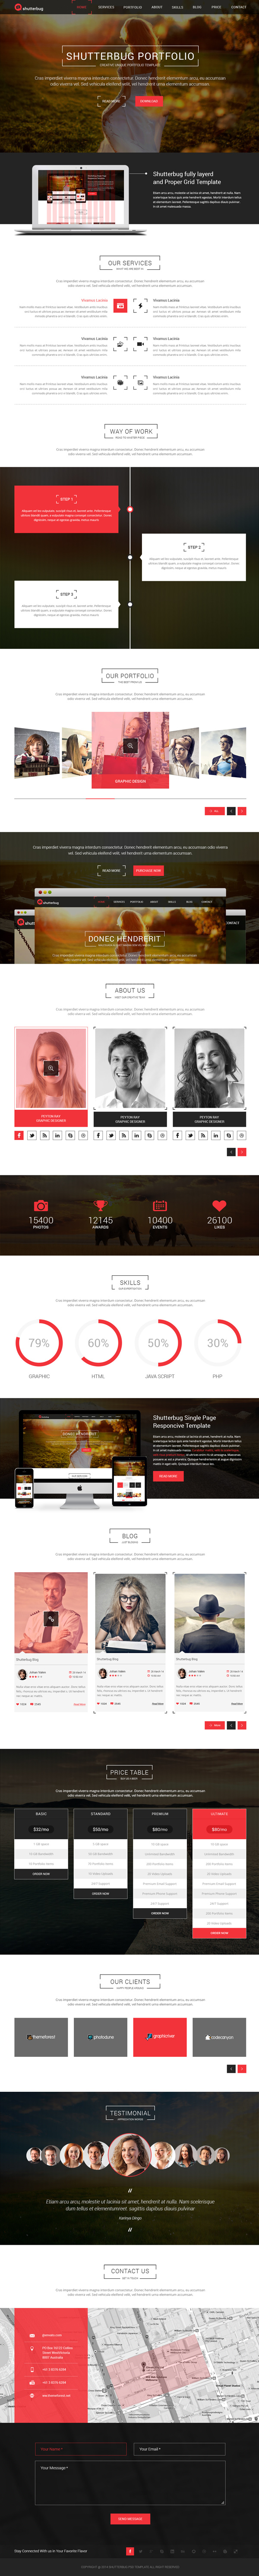 Shutterbug One page Multipurpose PSD Template